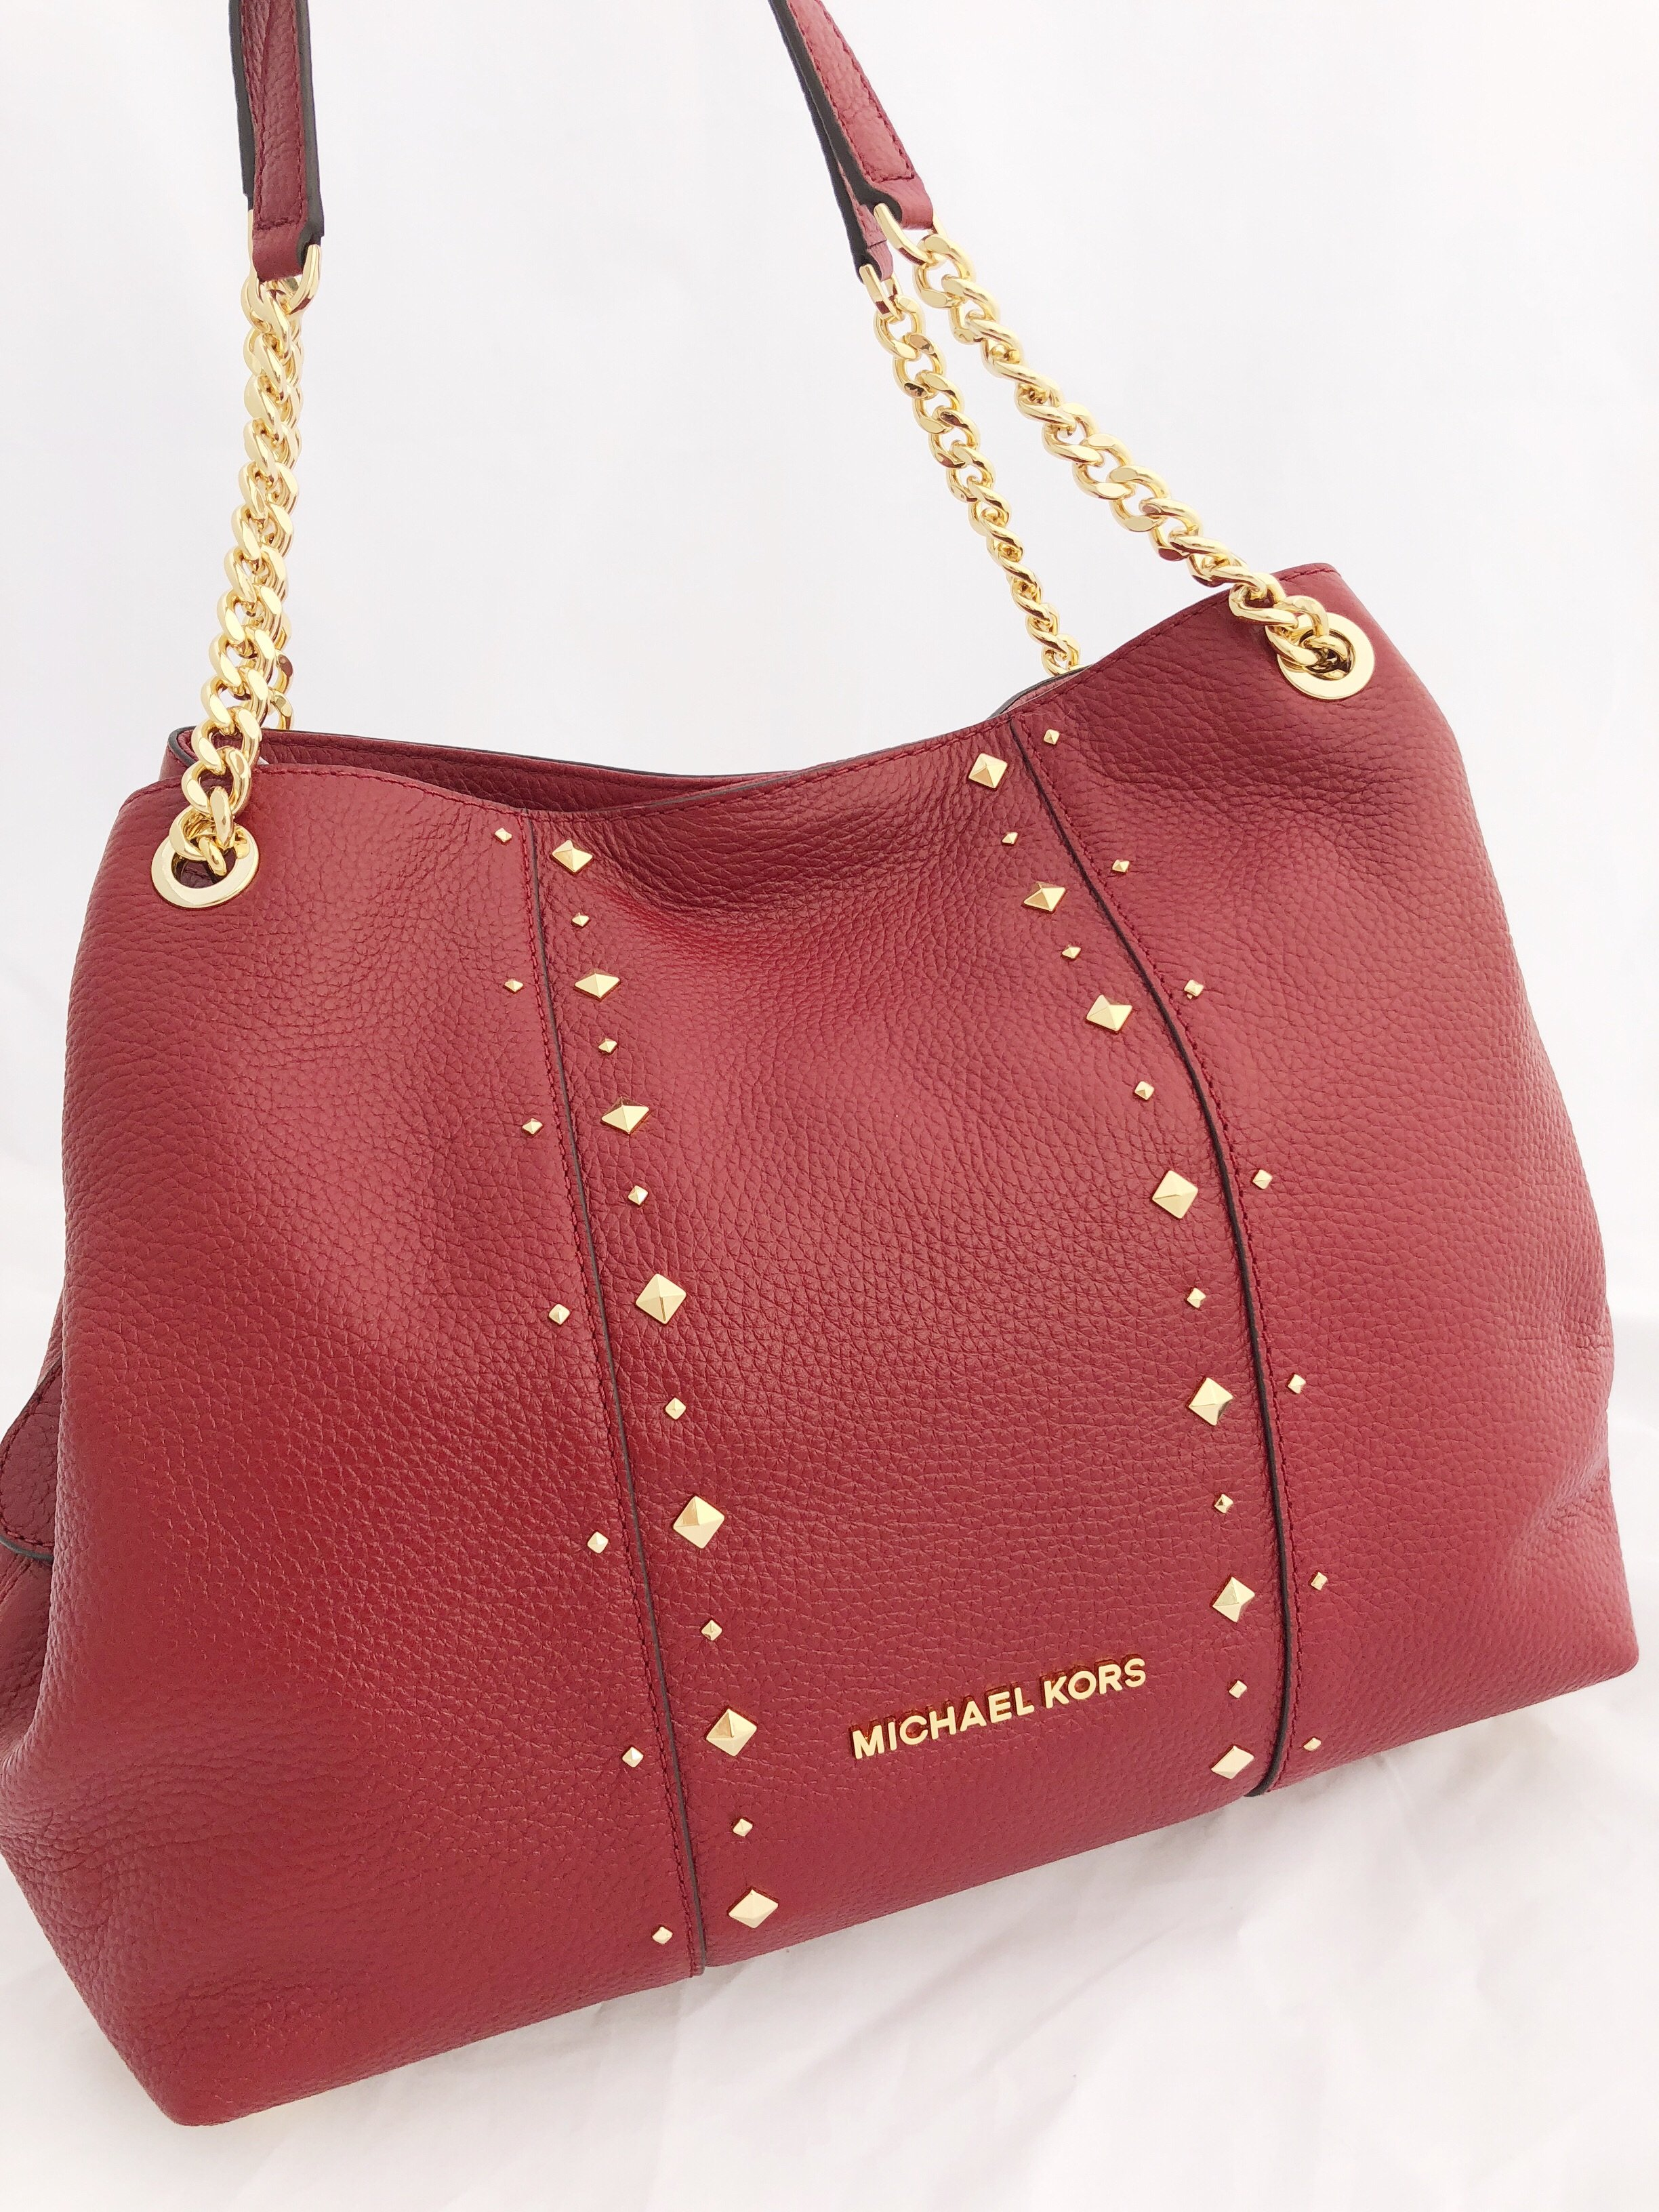 e5581bdea0babc Michael Kors Red Bag With Gold Chain | Stanford Center for ...